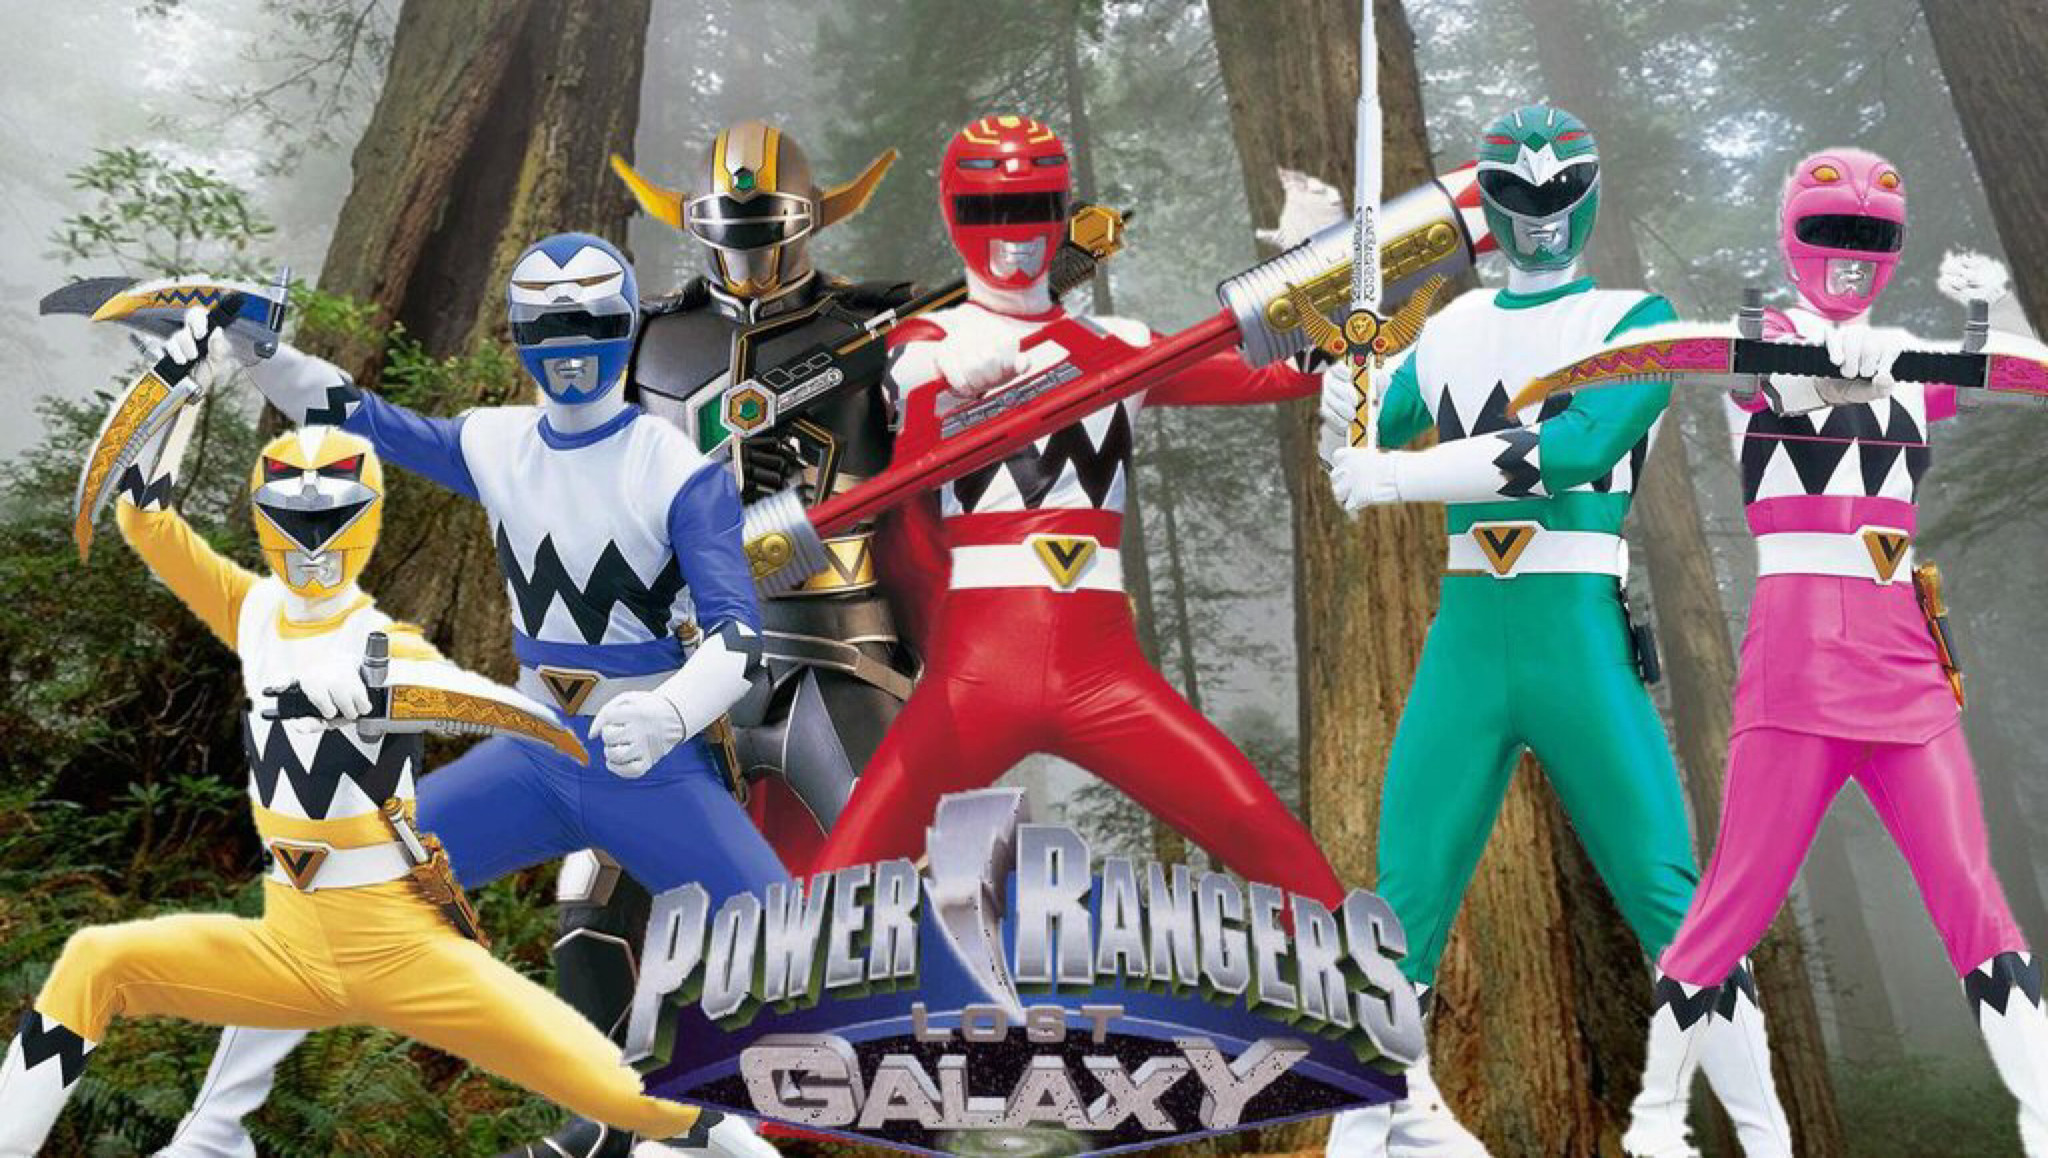 Power Rangers Dino Charge Wallpaper (83+ Images